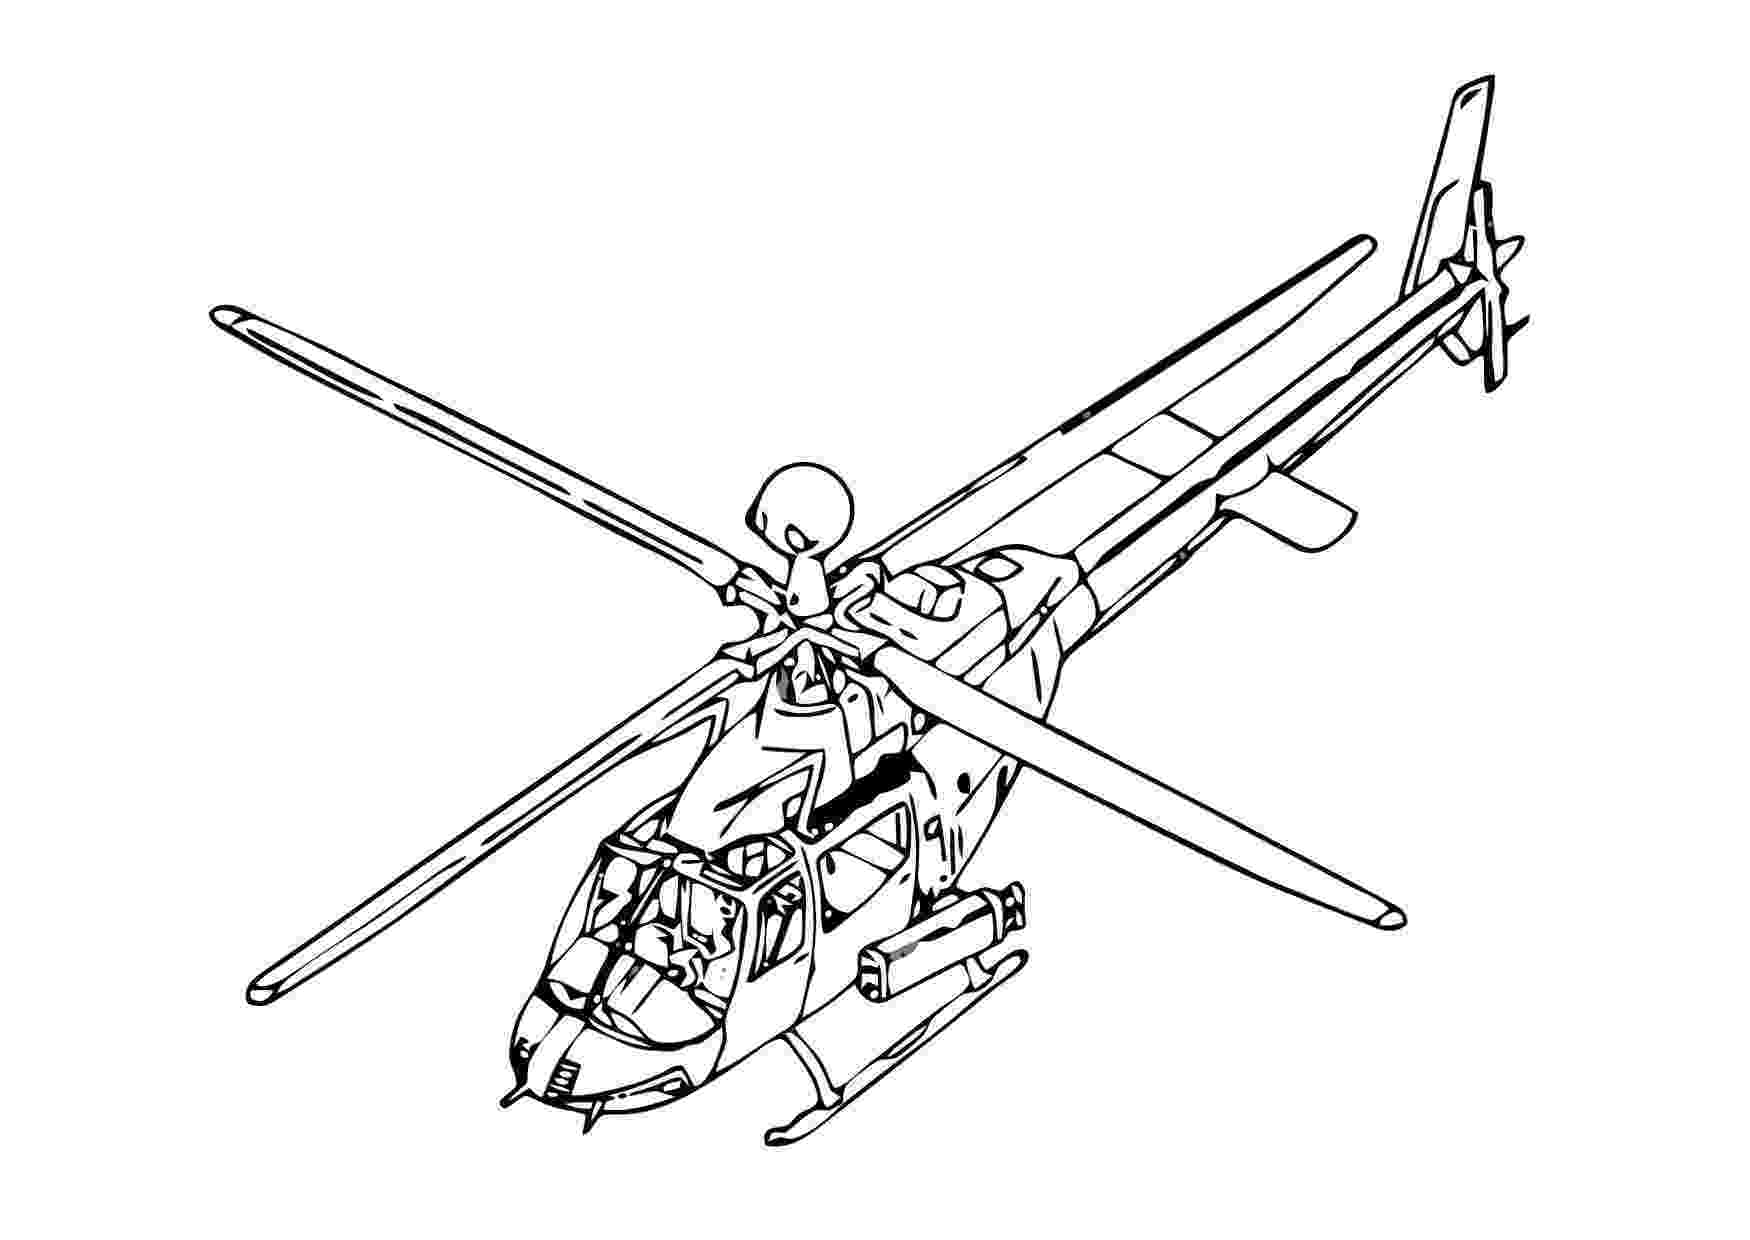 helicopter coloring page free printable helicopter coloring pages for kids coloring helicopter page